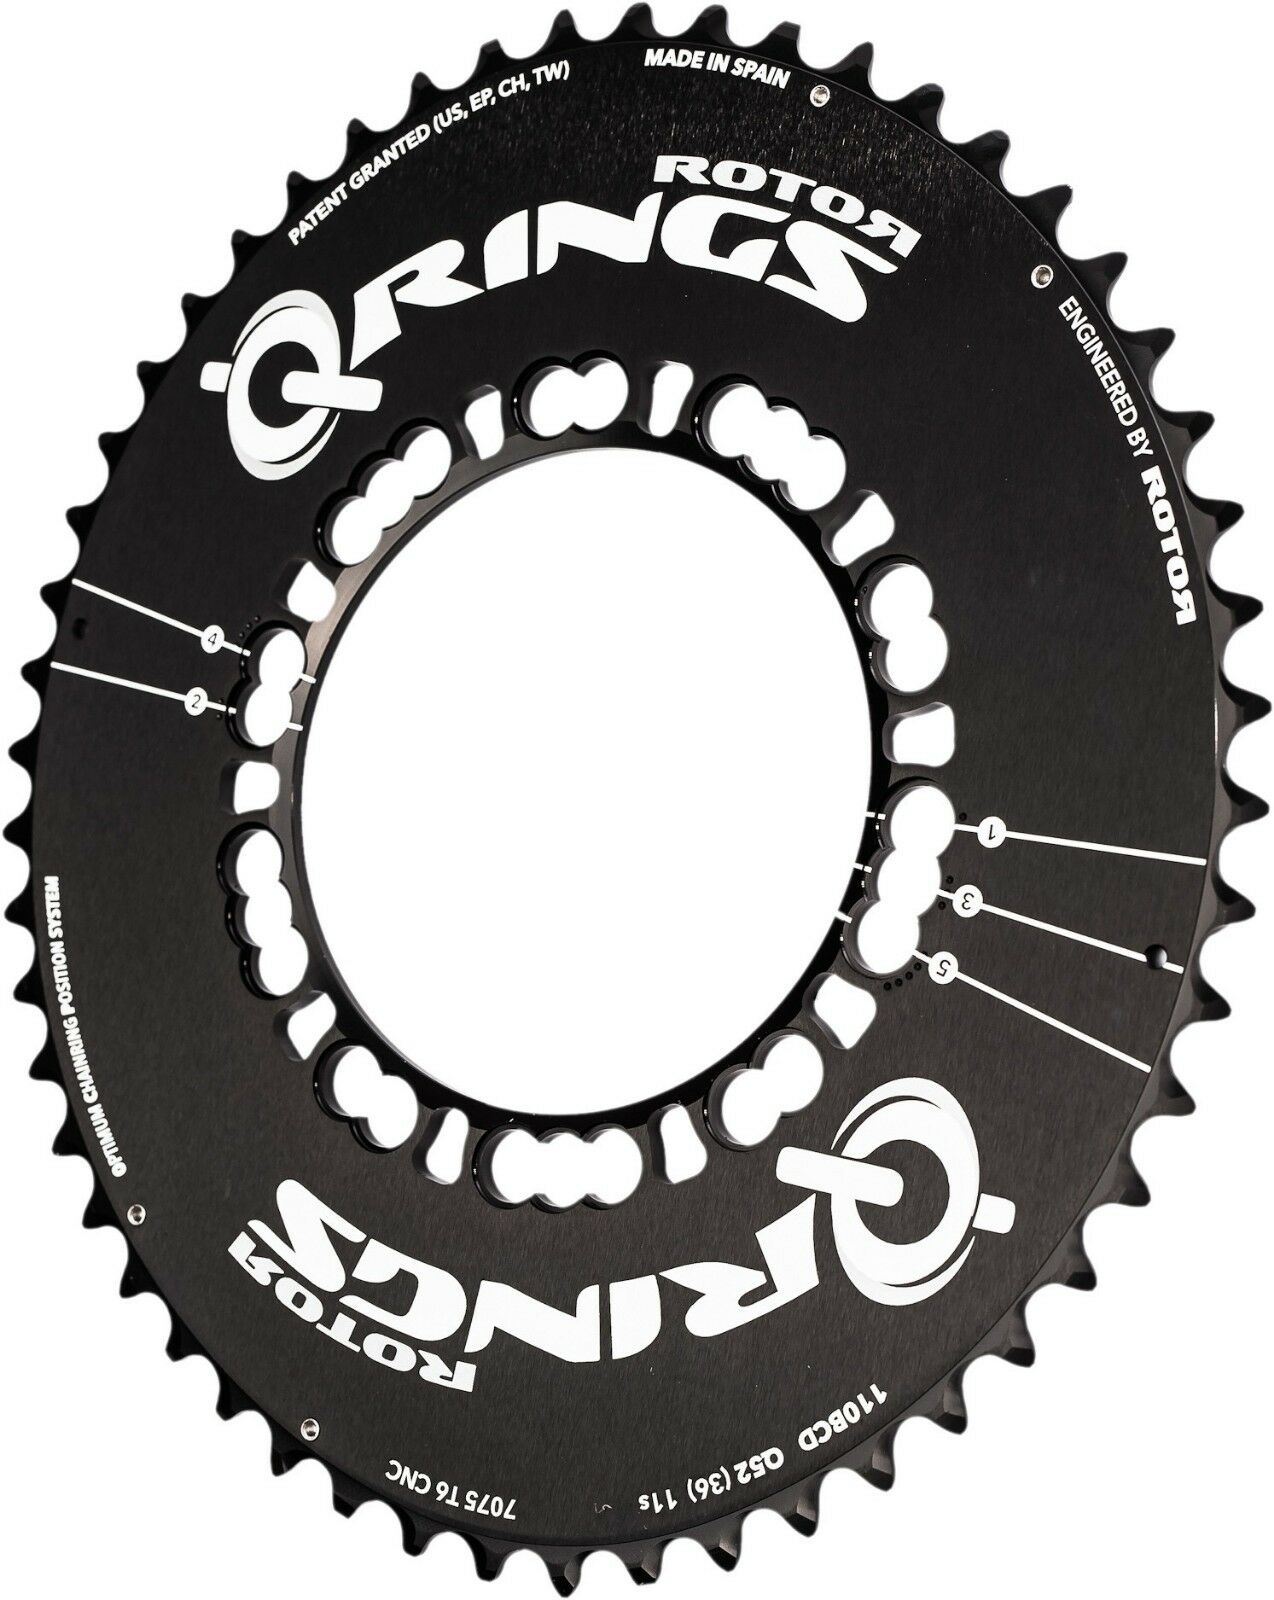 Redor Q-Ring and NoQ Oval Aero Road Chainring 110bcd 5 bolt